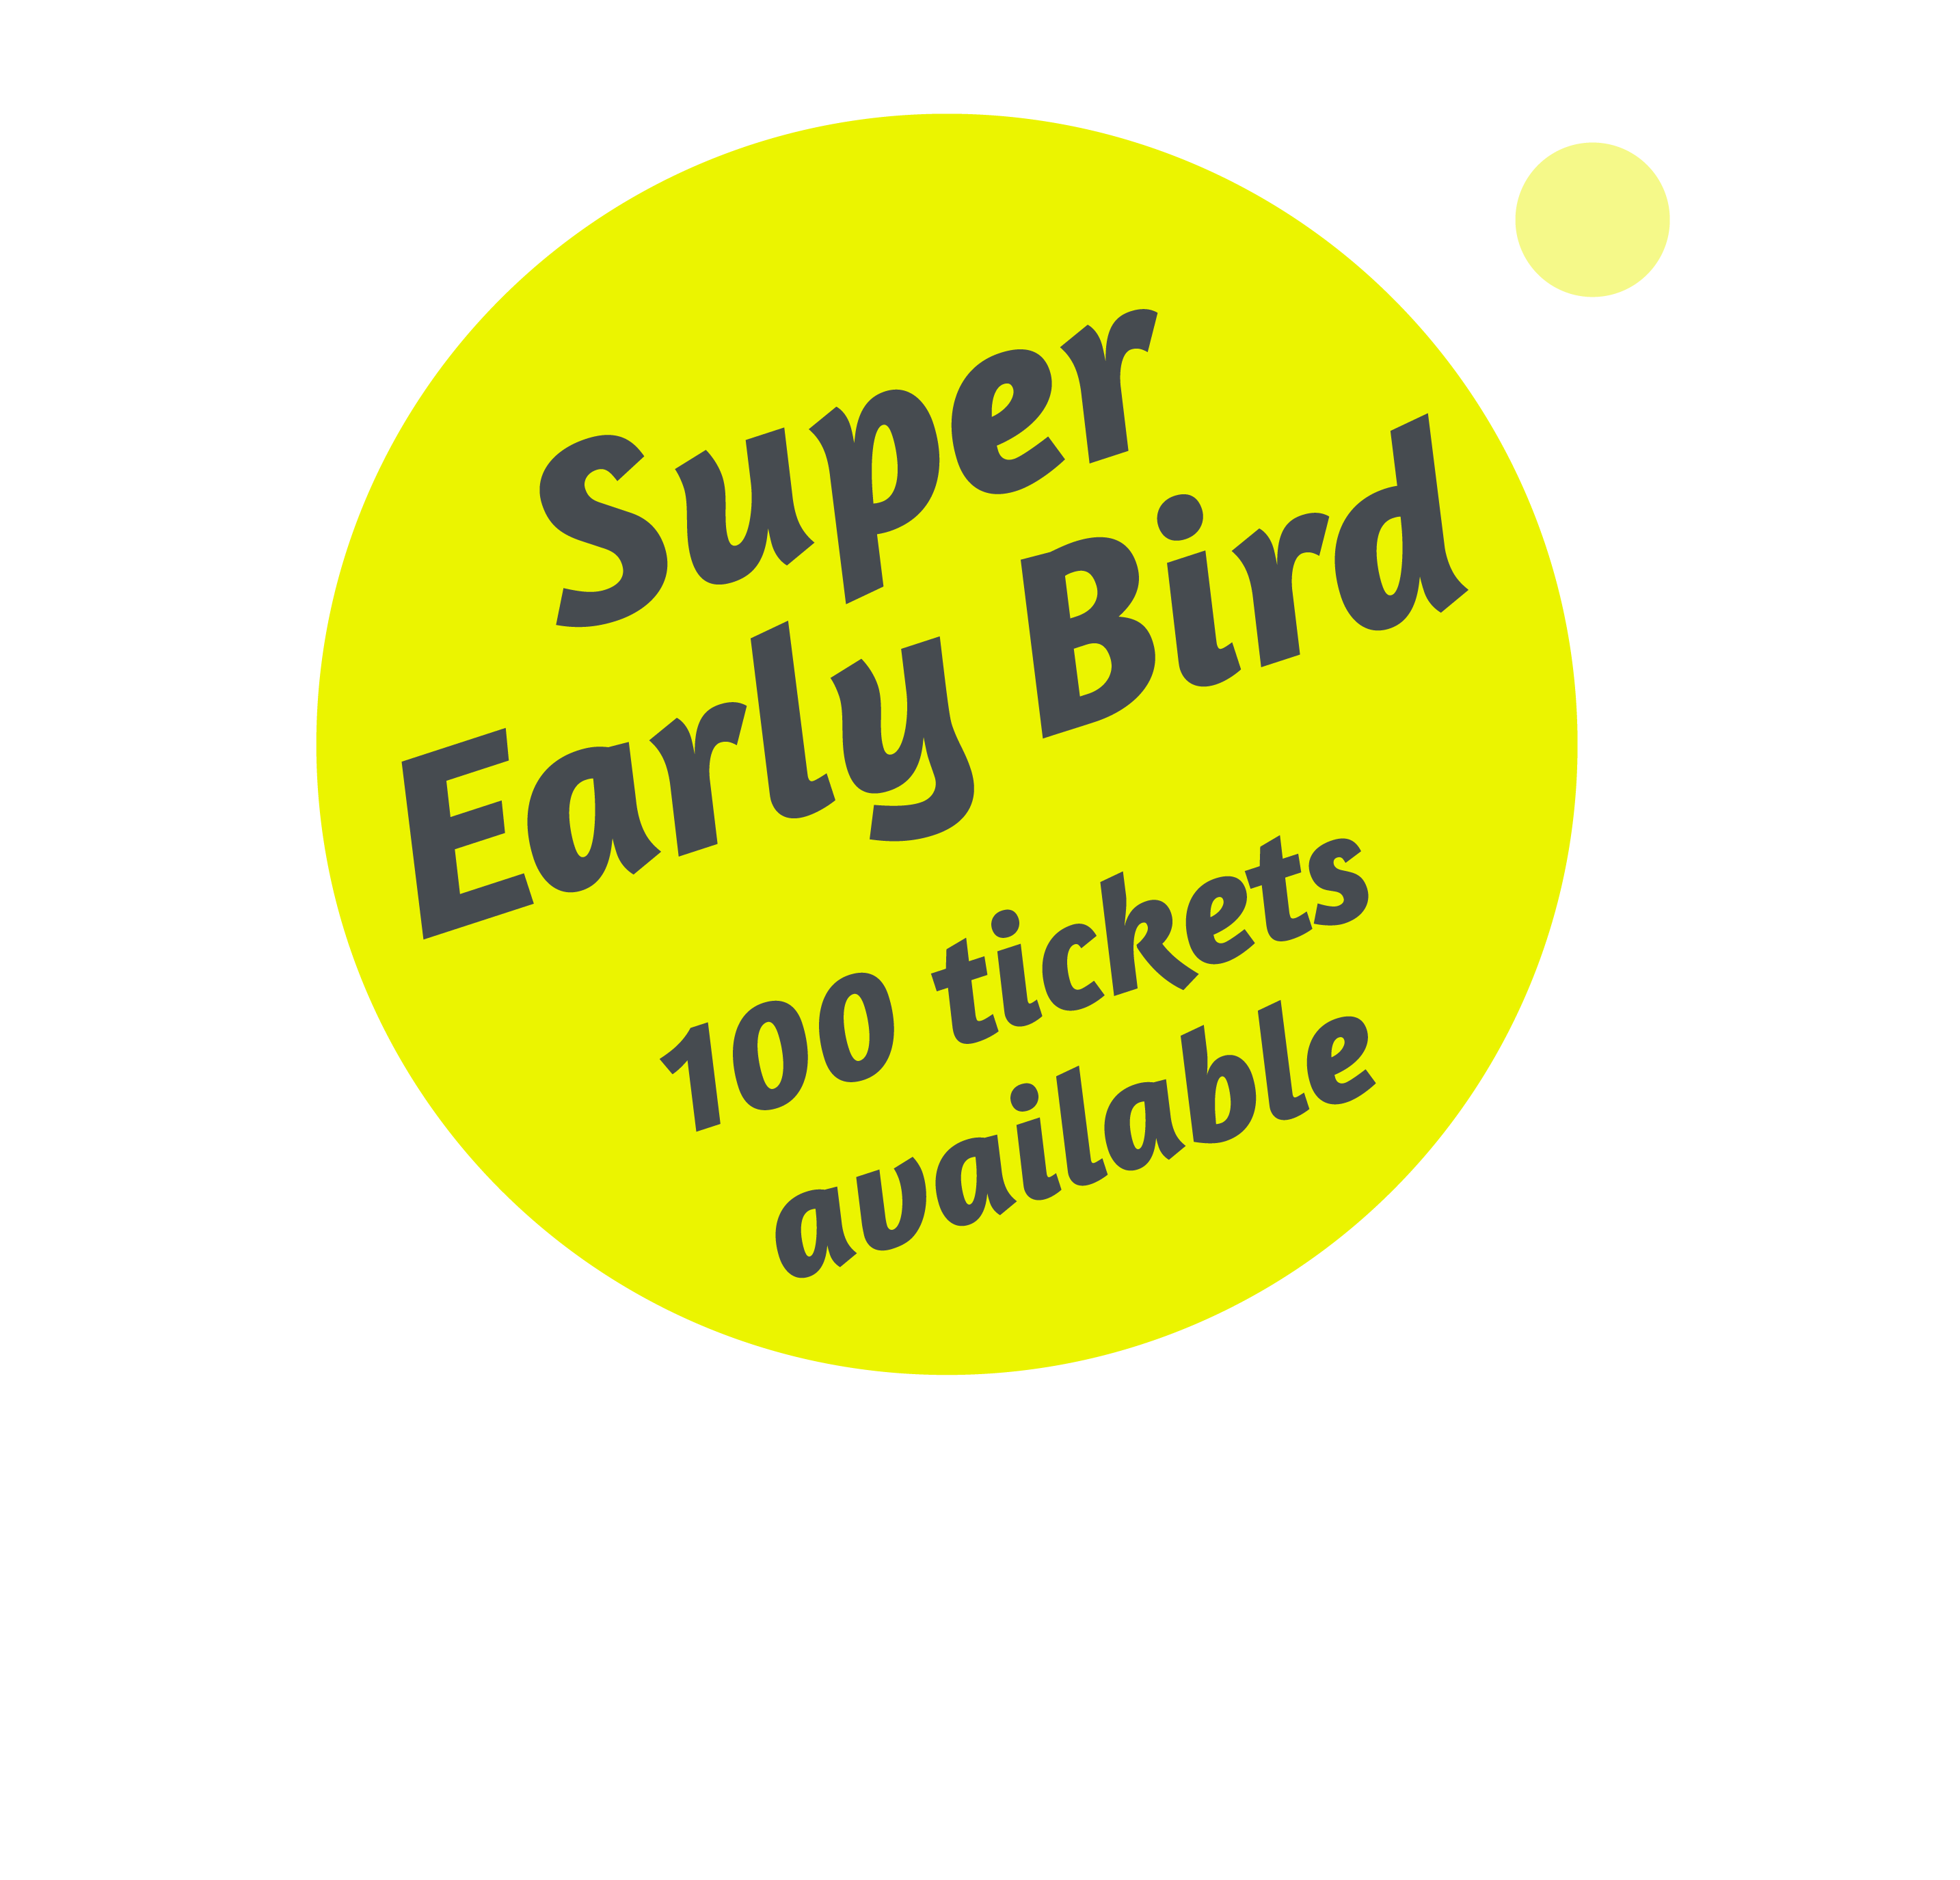 Promotion text: Super early bird: limited to 100